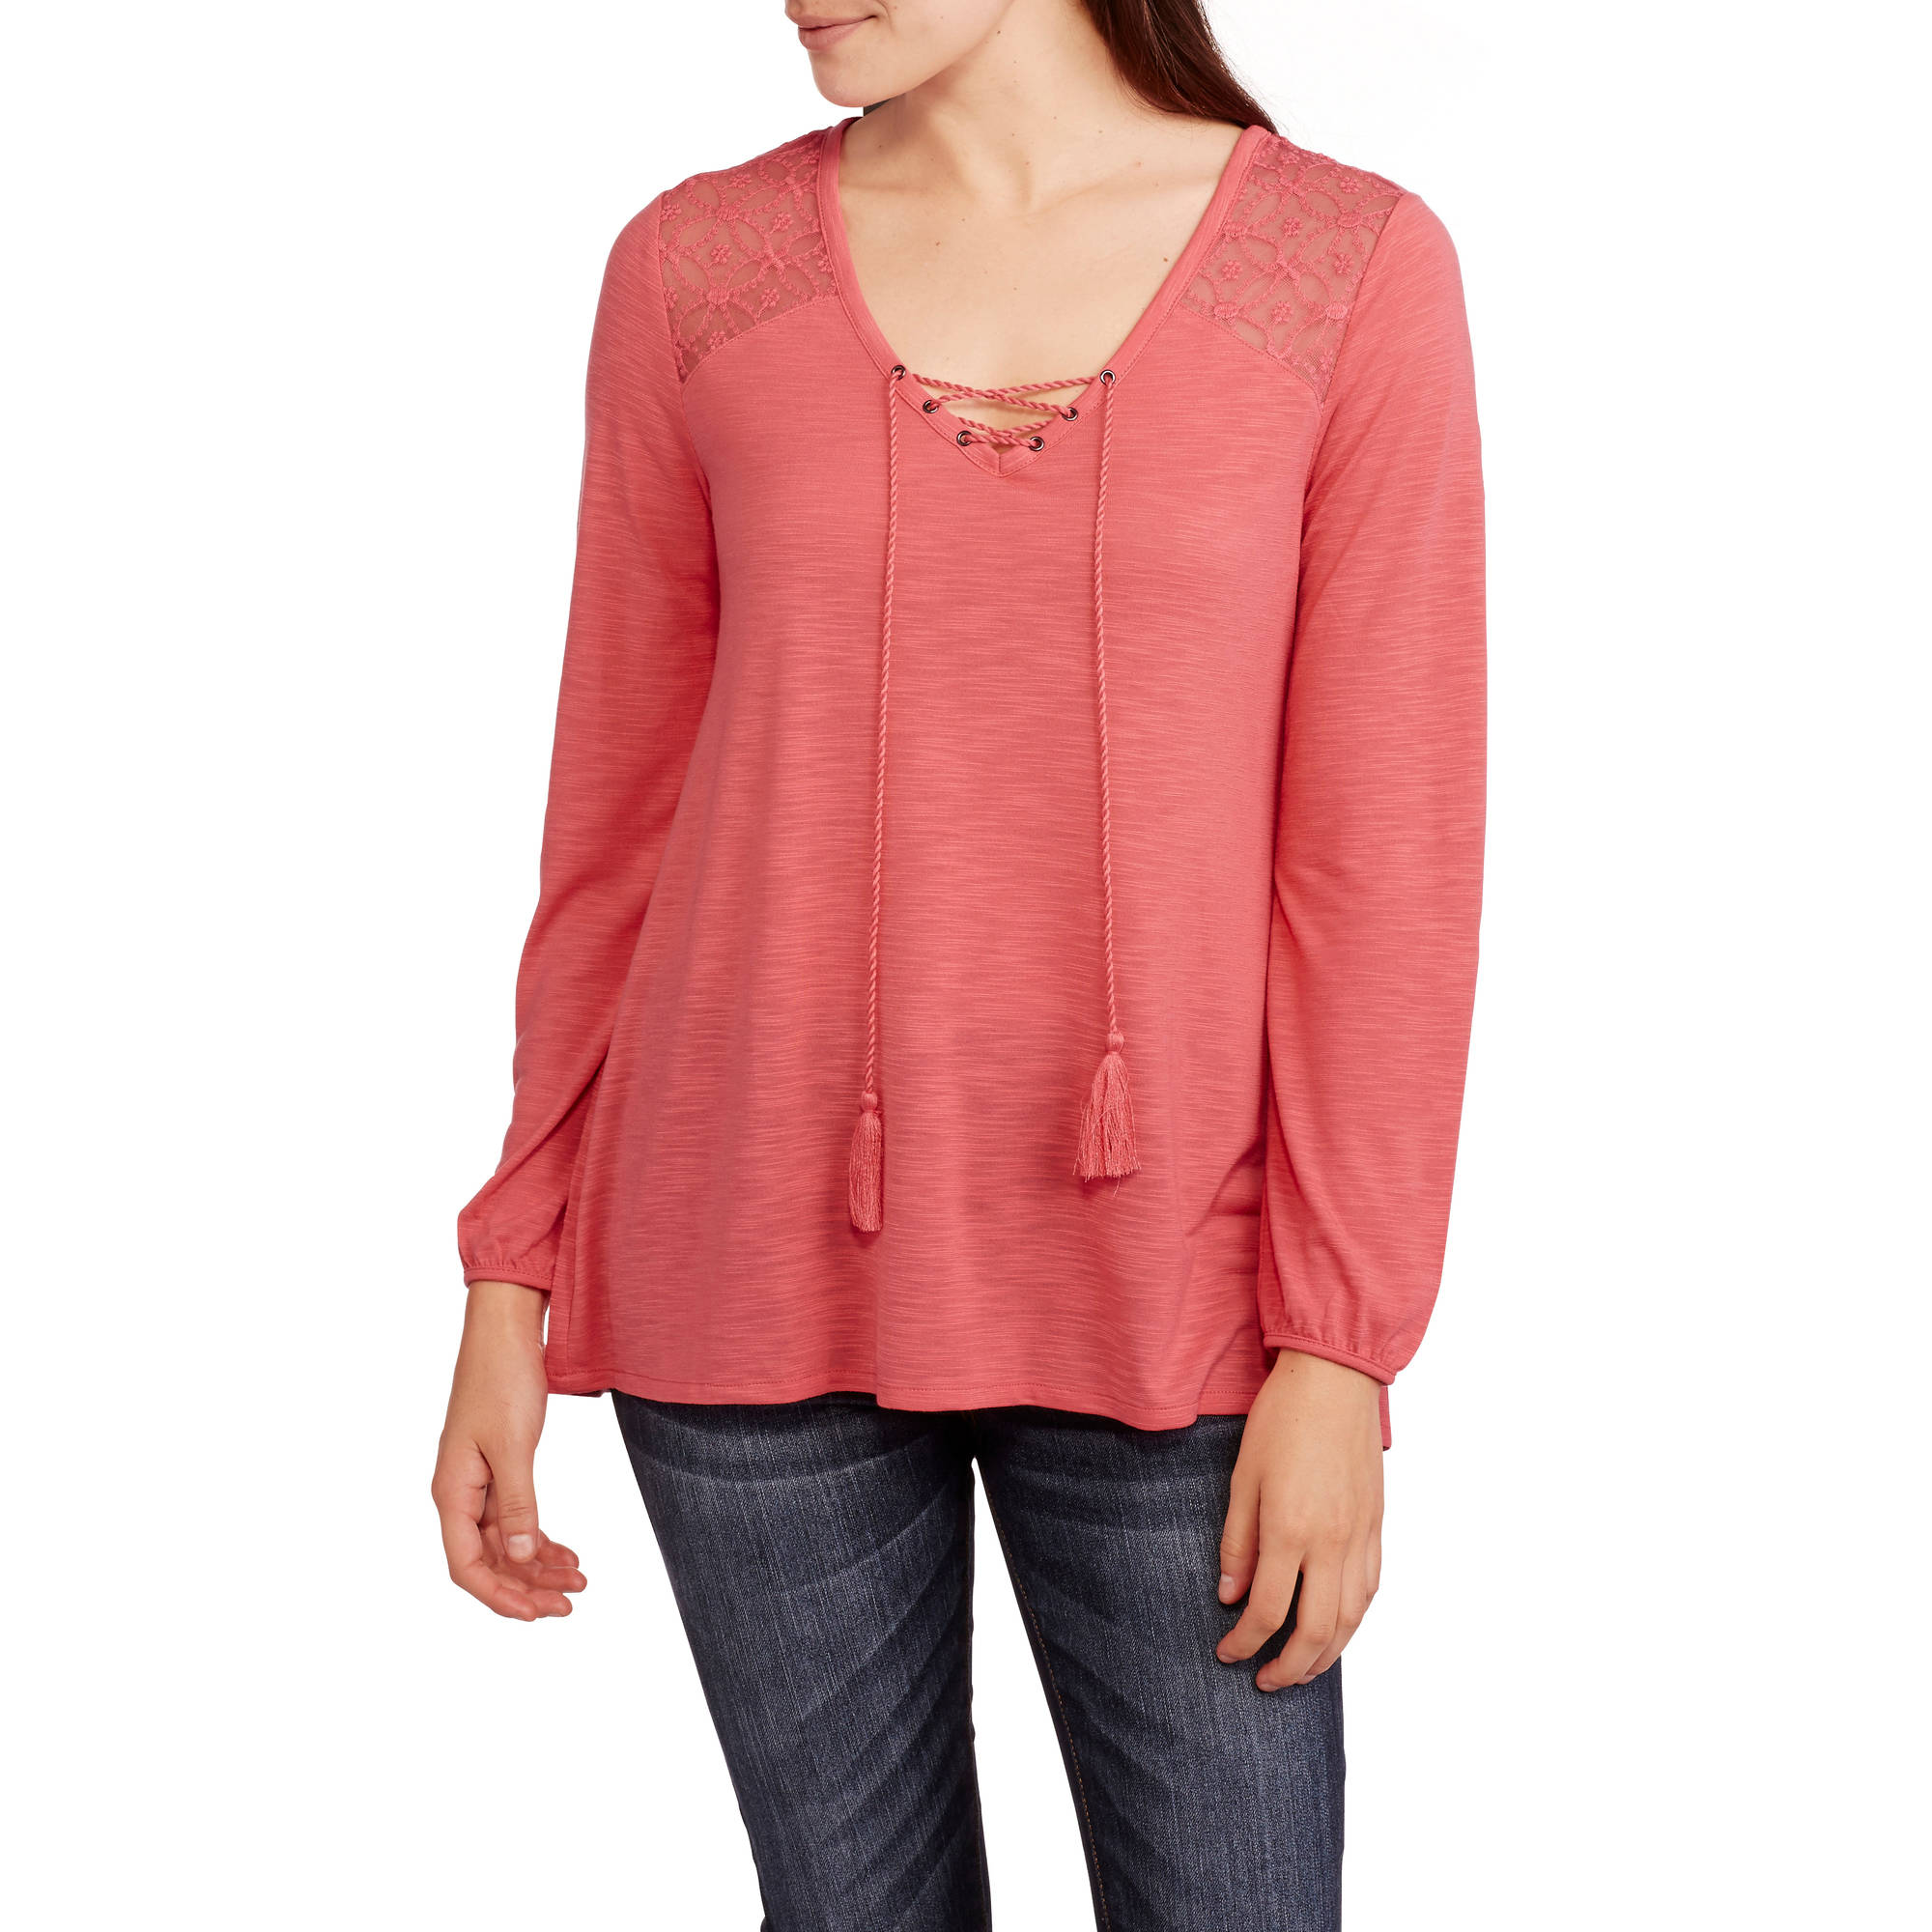 Faded Glory Women's Long Sleeve Lace Up Peasant Top with Front Tassels